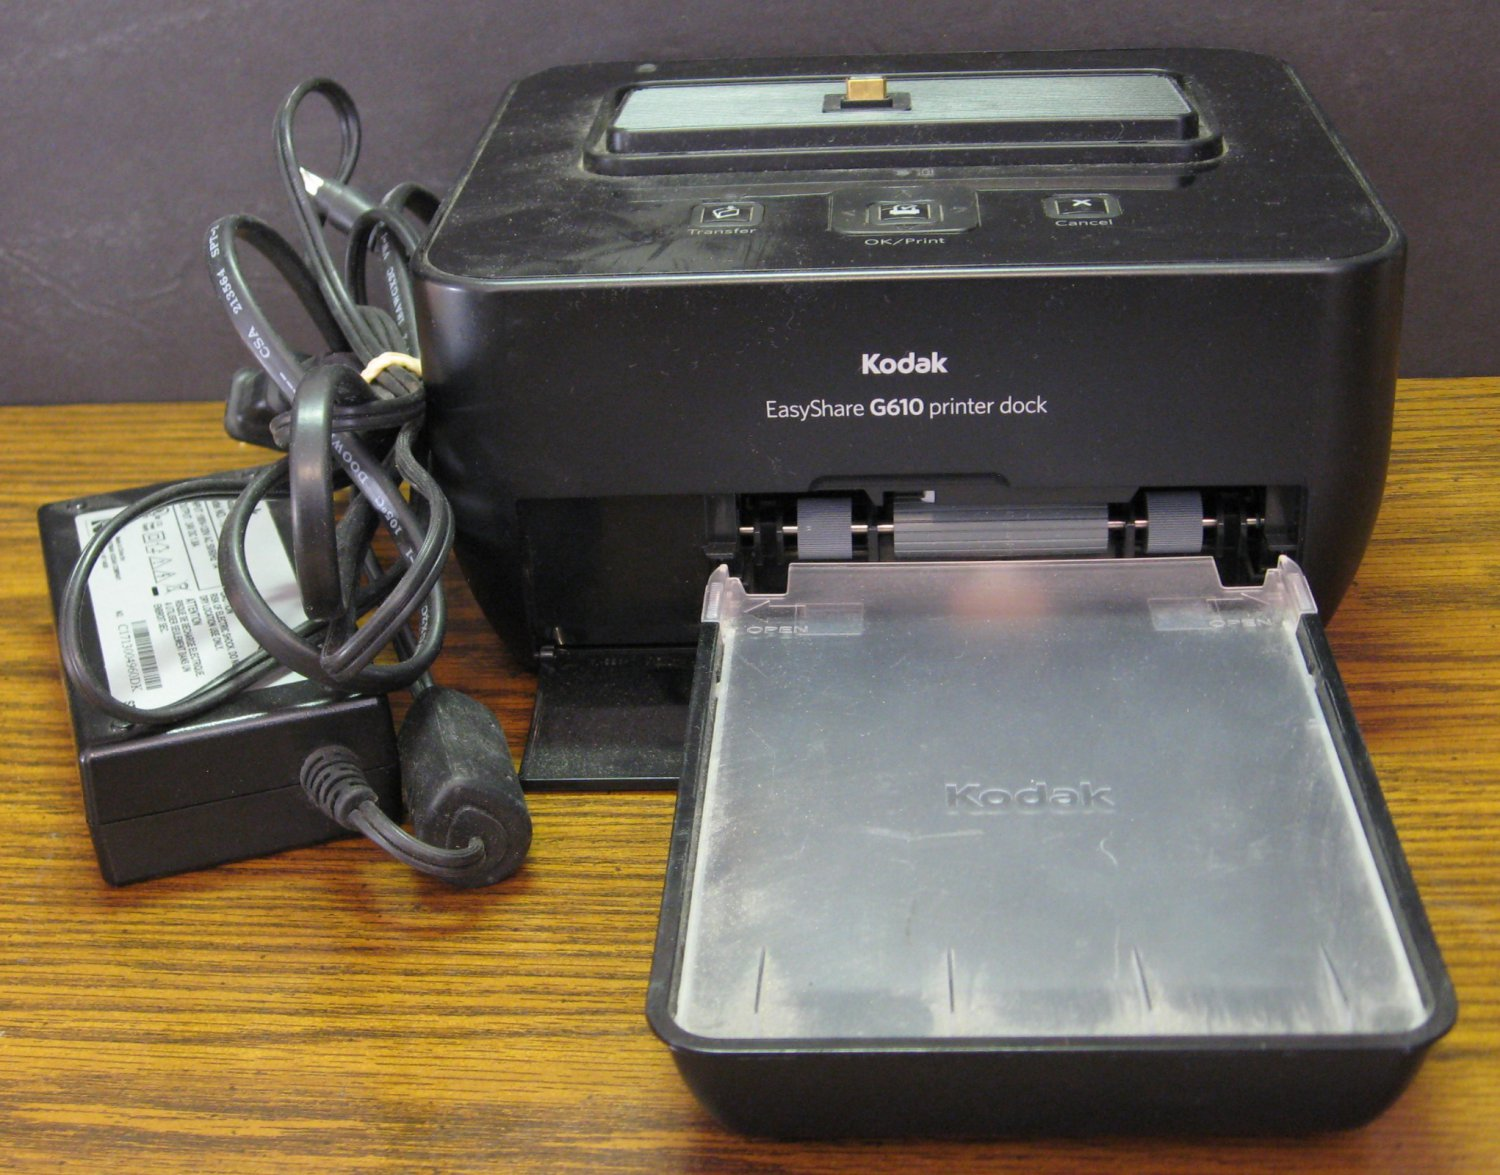 Kodak EasyShare Camera Printer Dock G610 - Black - UNTESTED - NO INK or PAPER